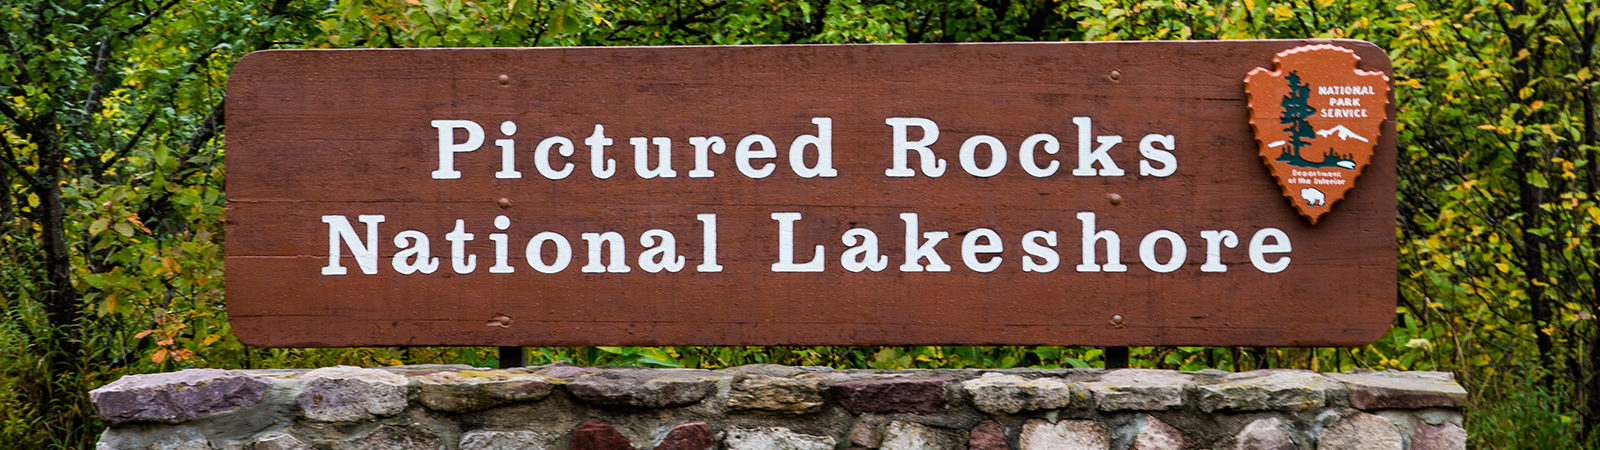 Pictured Rocks National Lakeshore sign